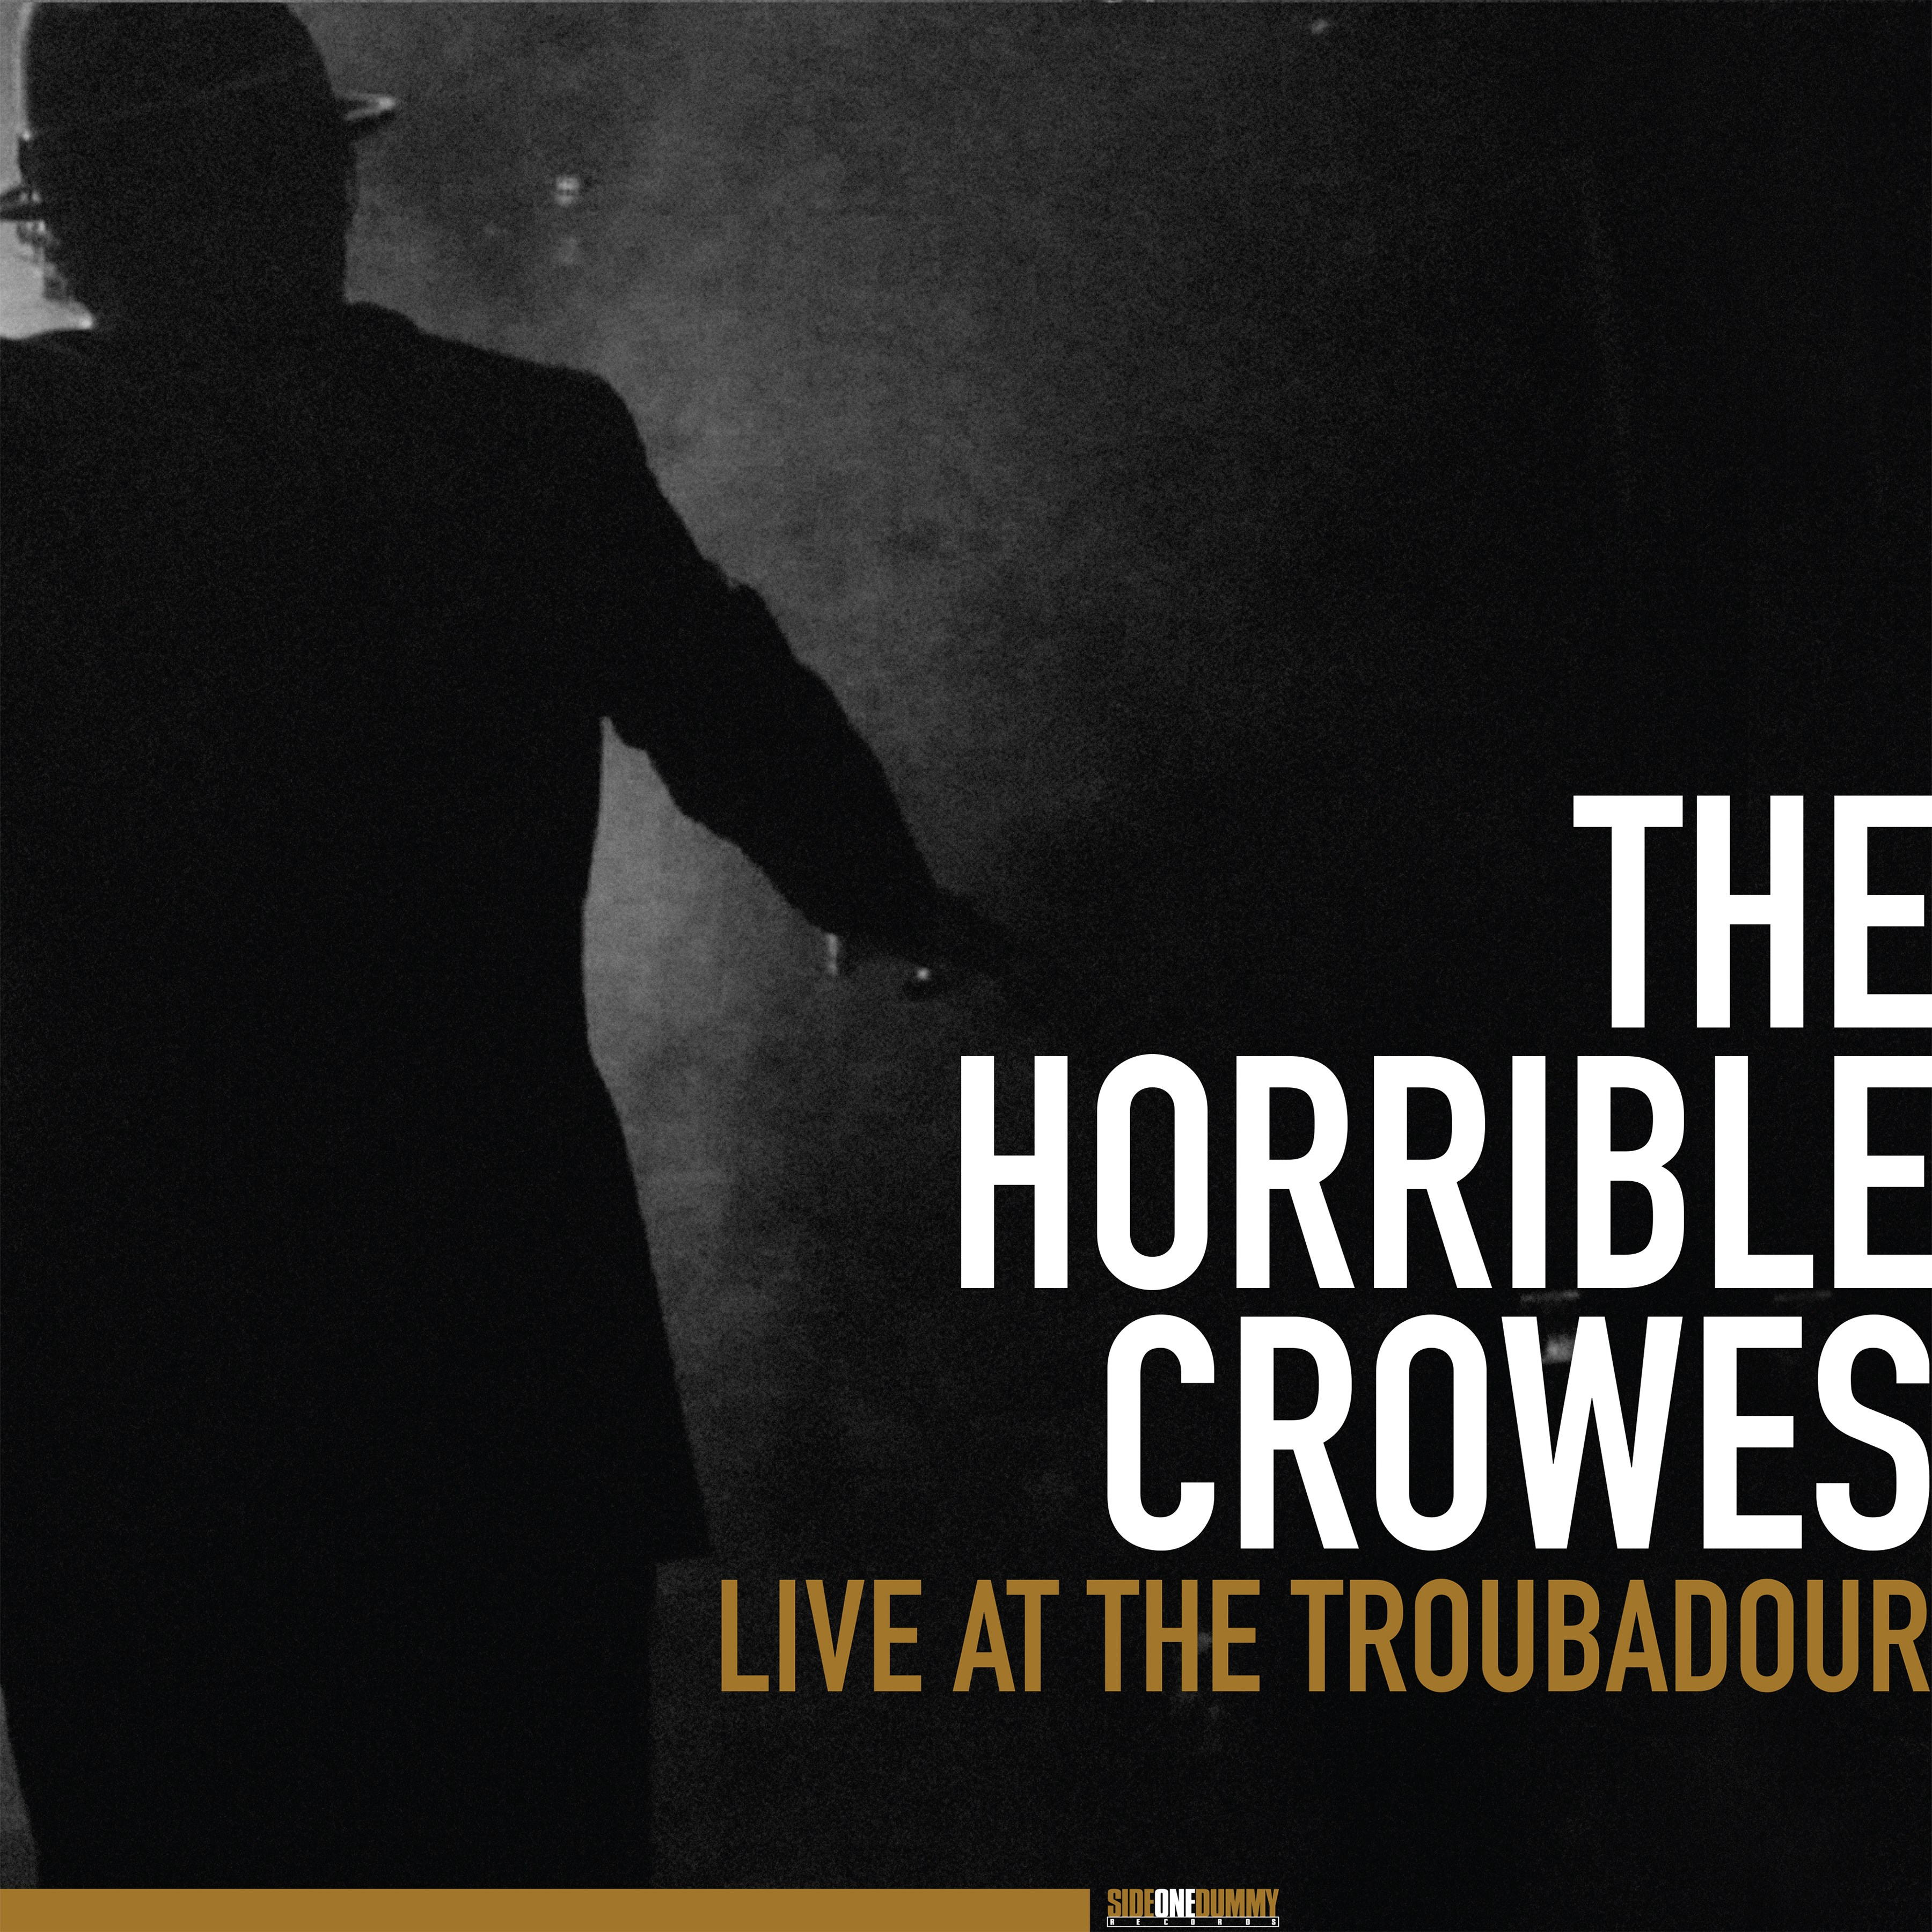 The Horrible Crowes: Live at the Troubadour